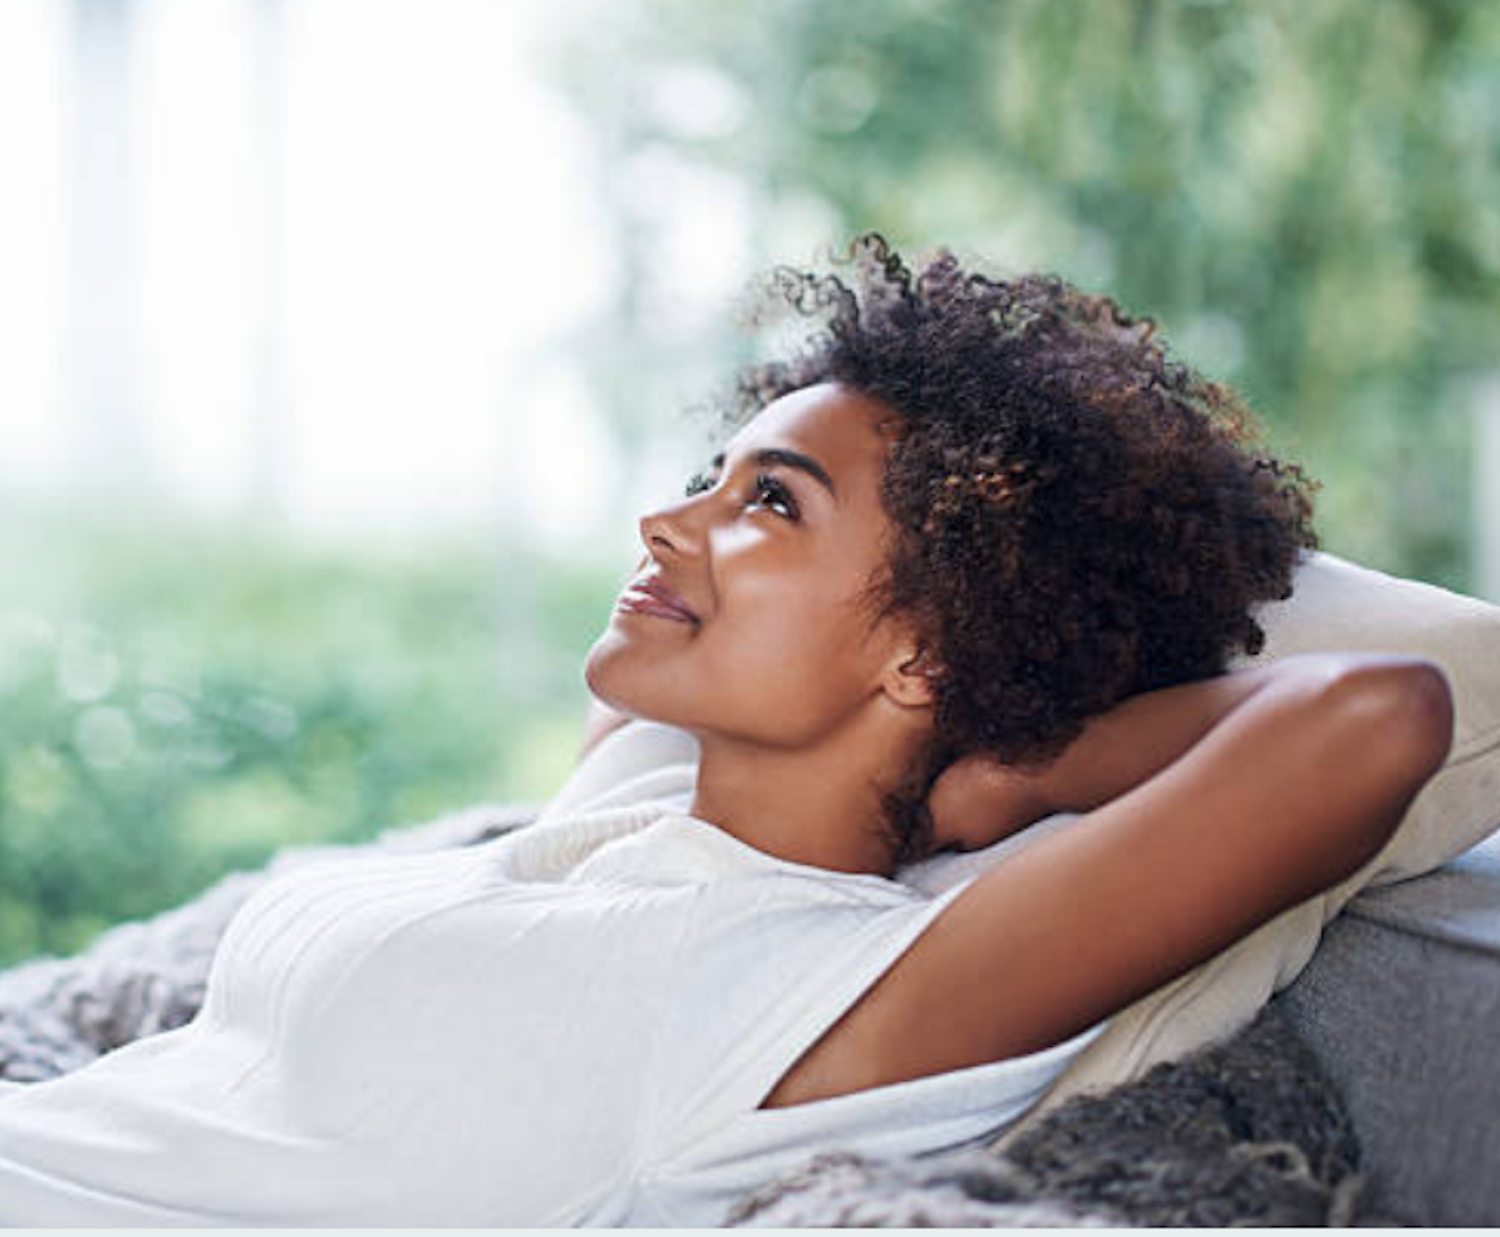 african american woman with curly hair resting with hands behind her head and smile on her face